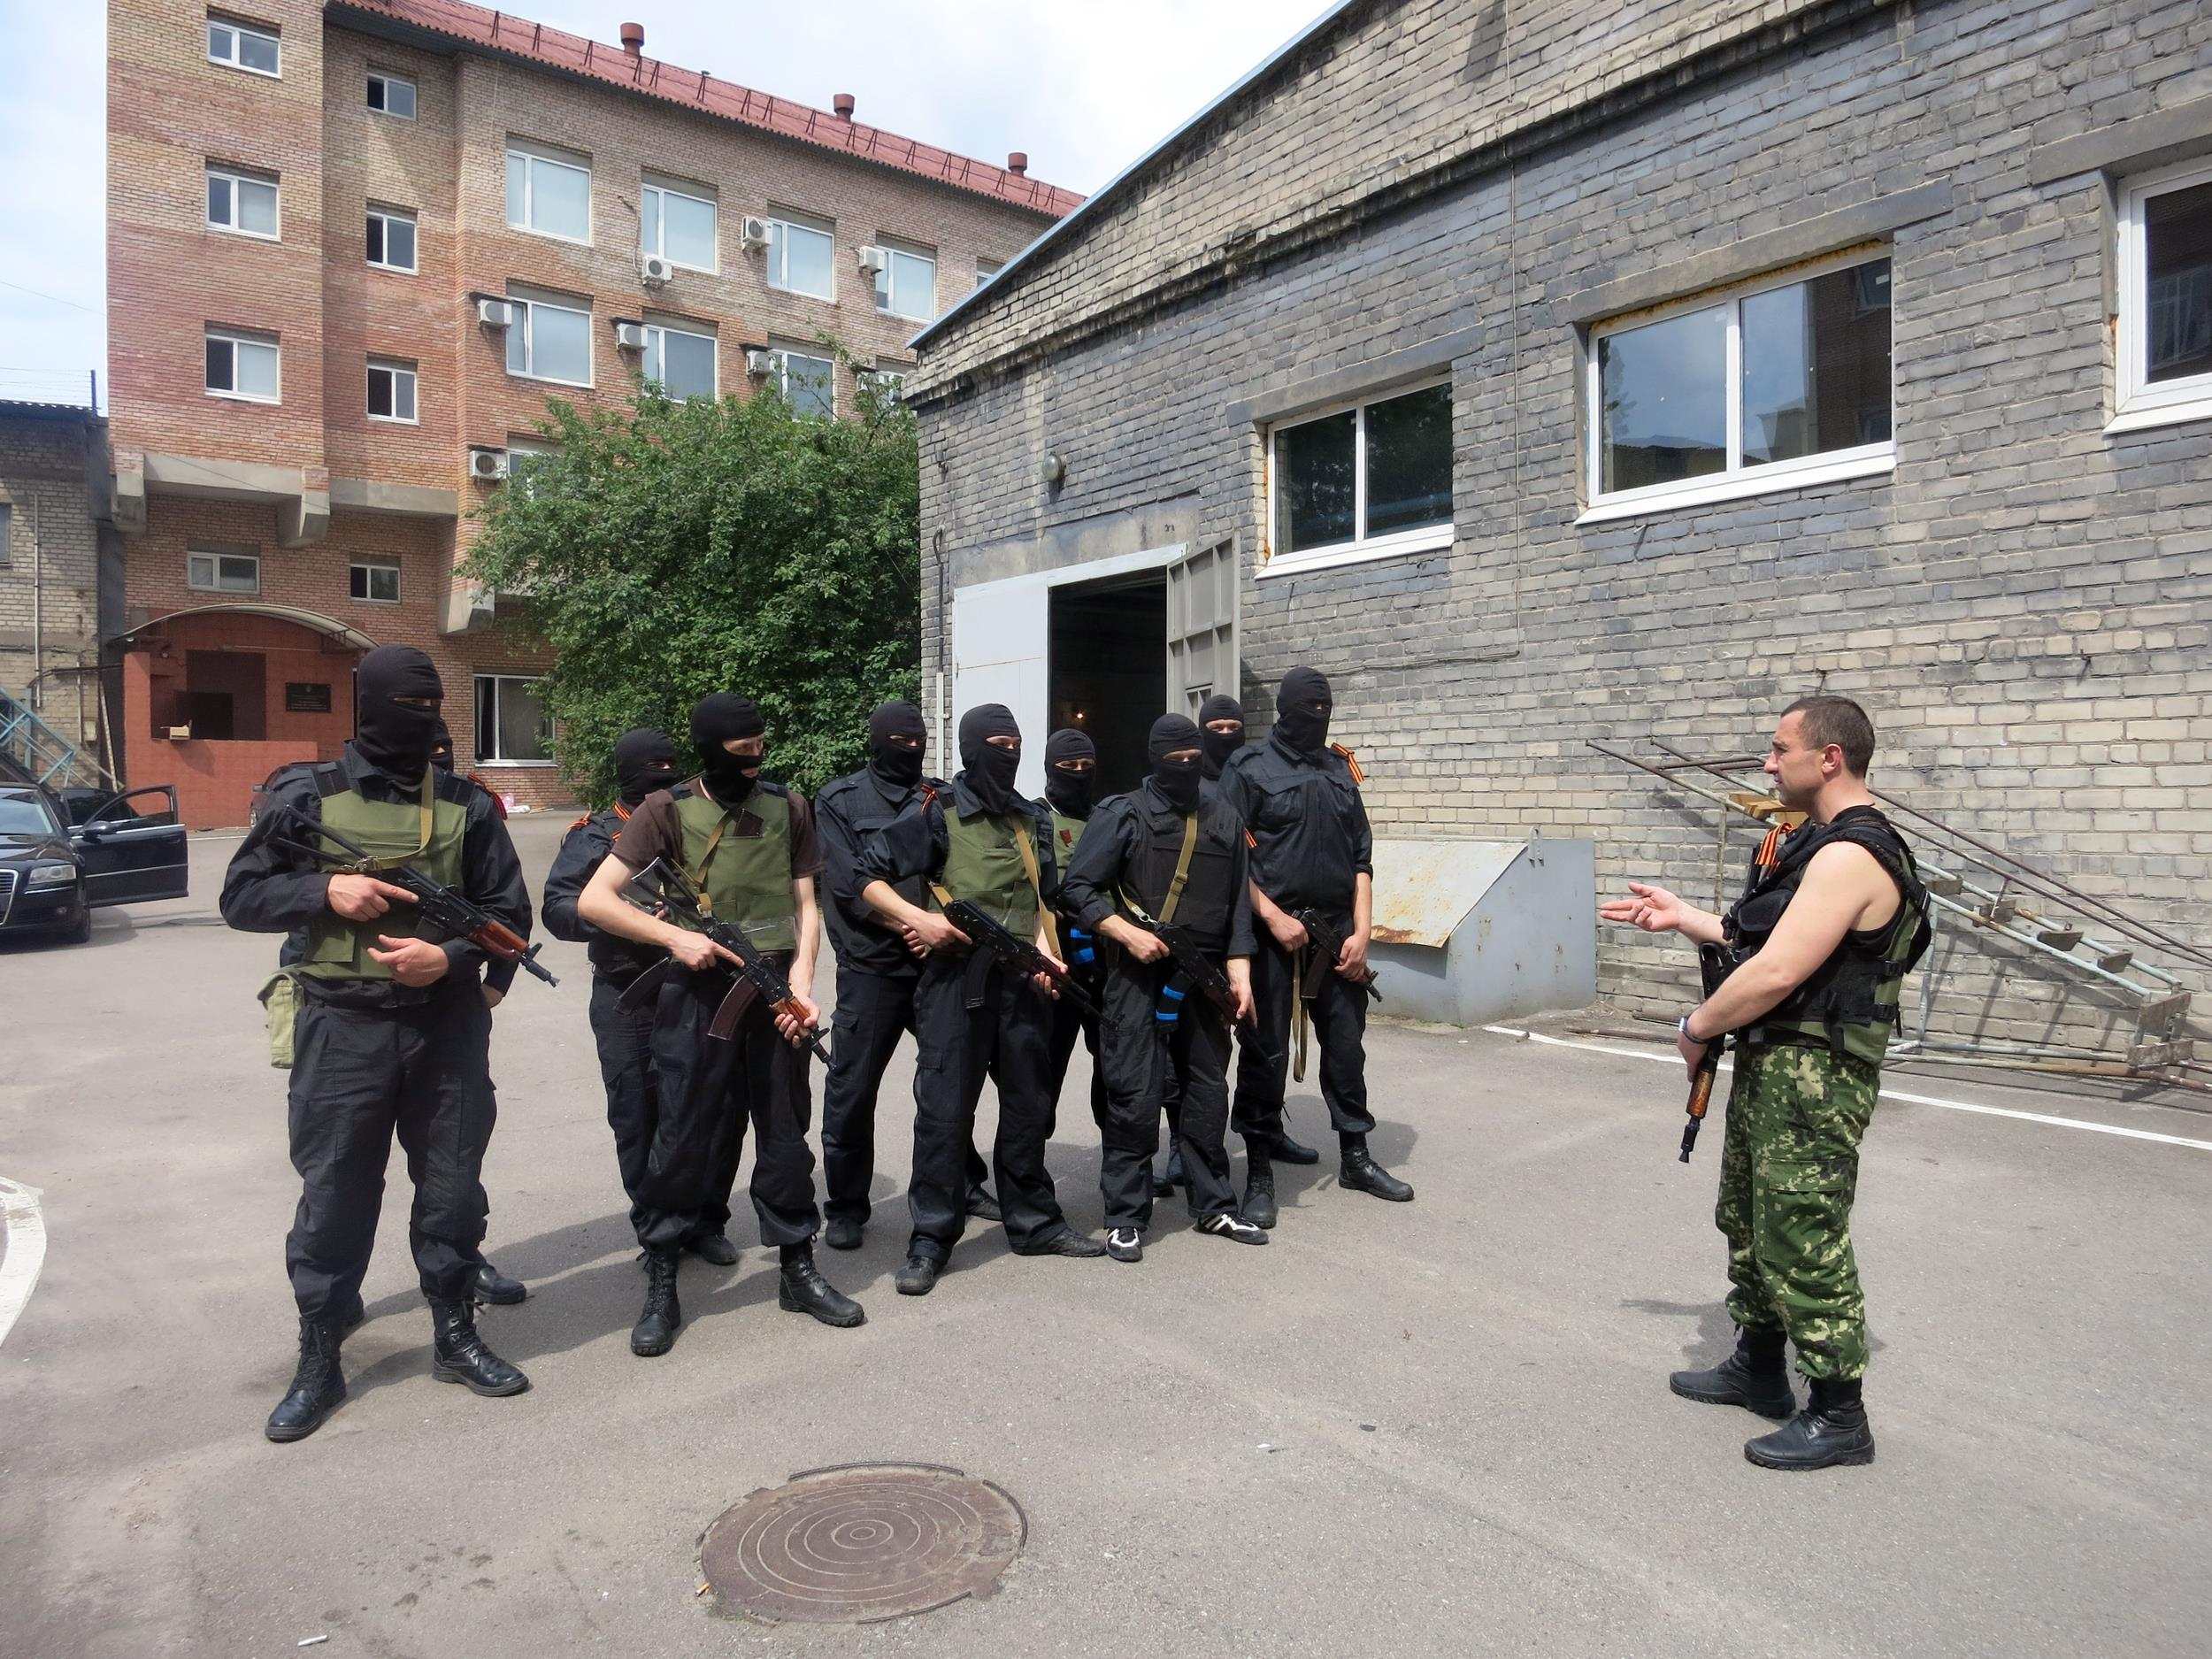 Members of the Russian Orthodox Army training in Donetsk, eastern Ukraine.